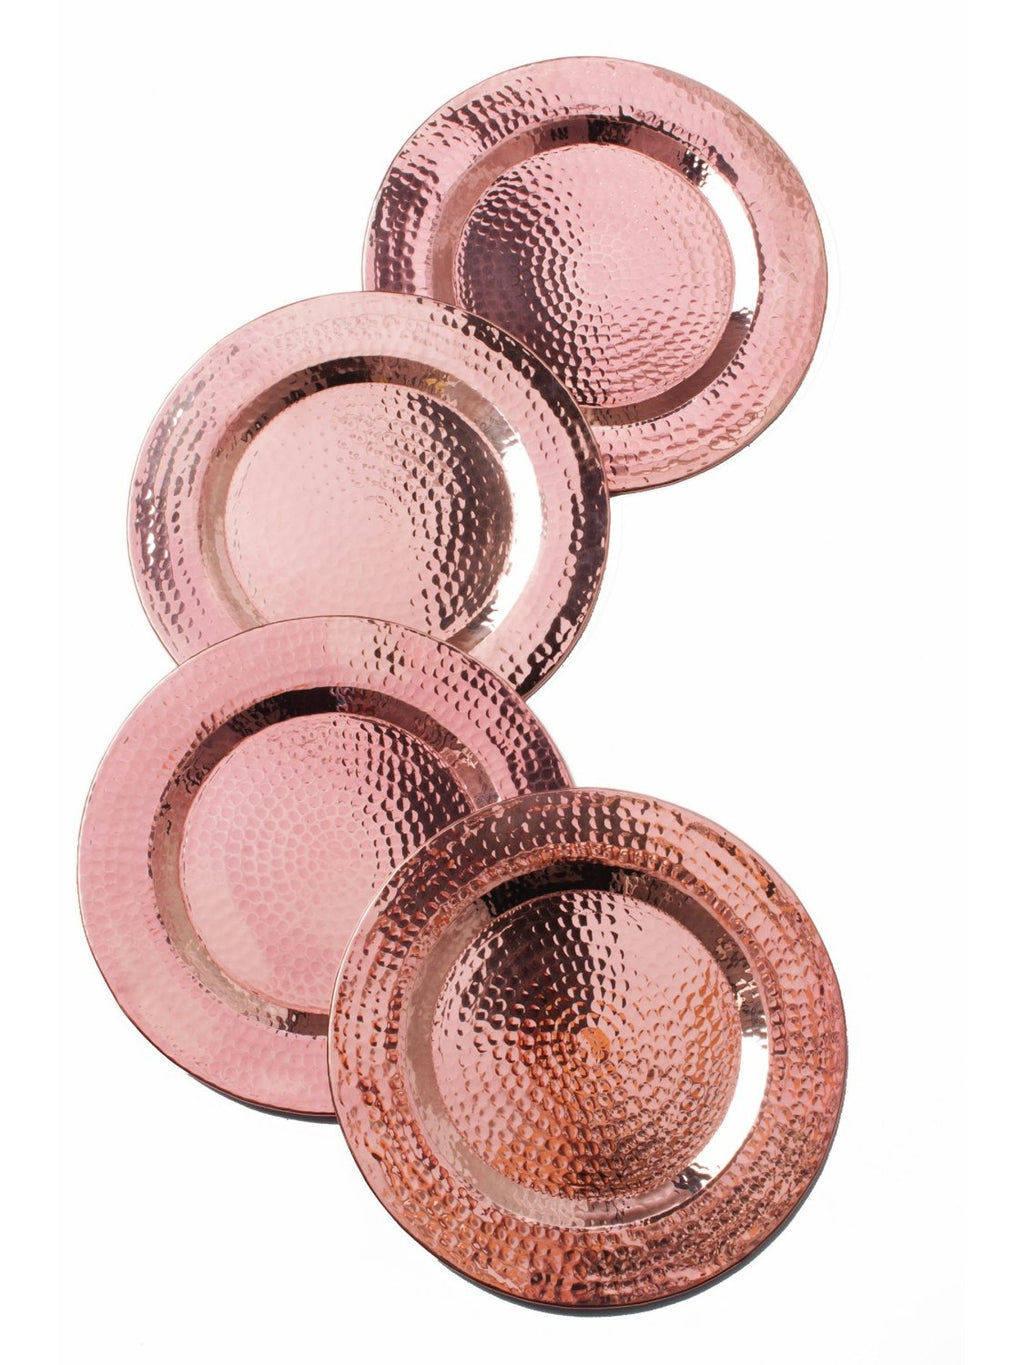 Copper Charger Plates - Set of 4 - SPECIAL ORDER